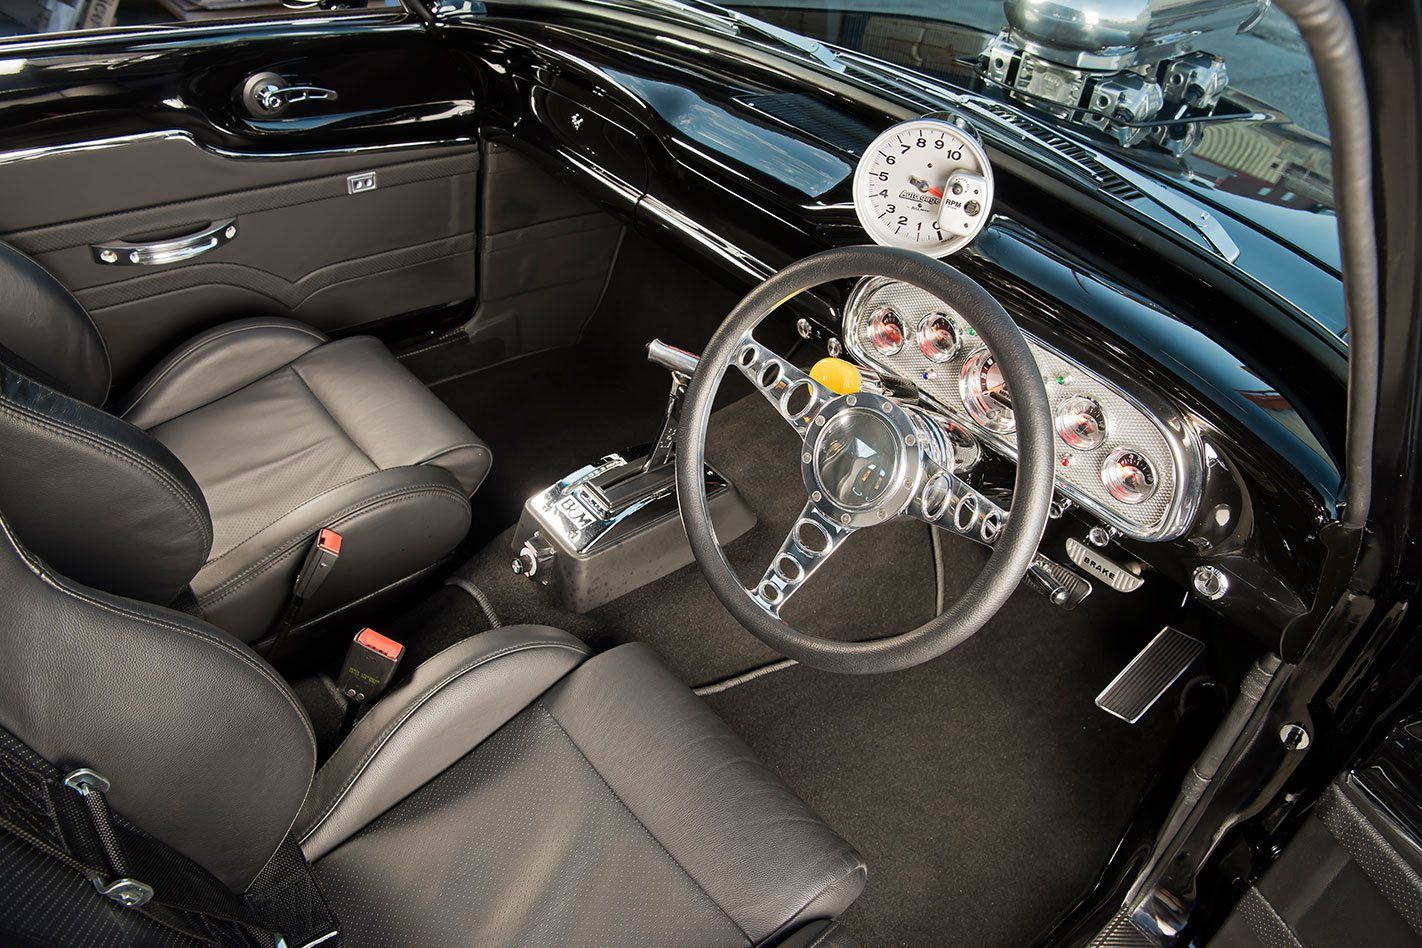 Swell Ford Falcon Xk Ute Interior 1960 65 Falcons Ford Ibusinesslaw Wood Chair Design Ideas Ibusinesslaworg